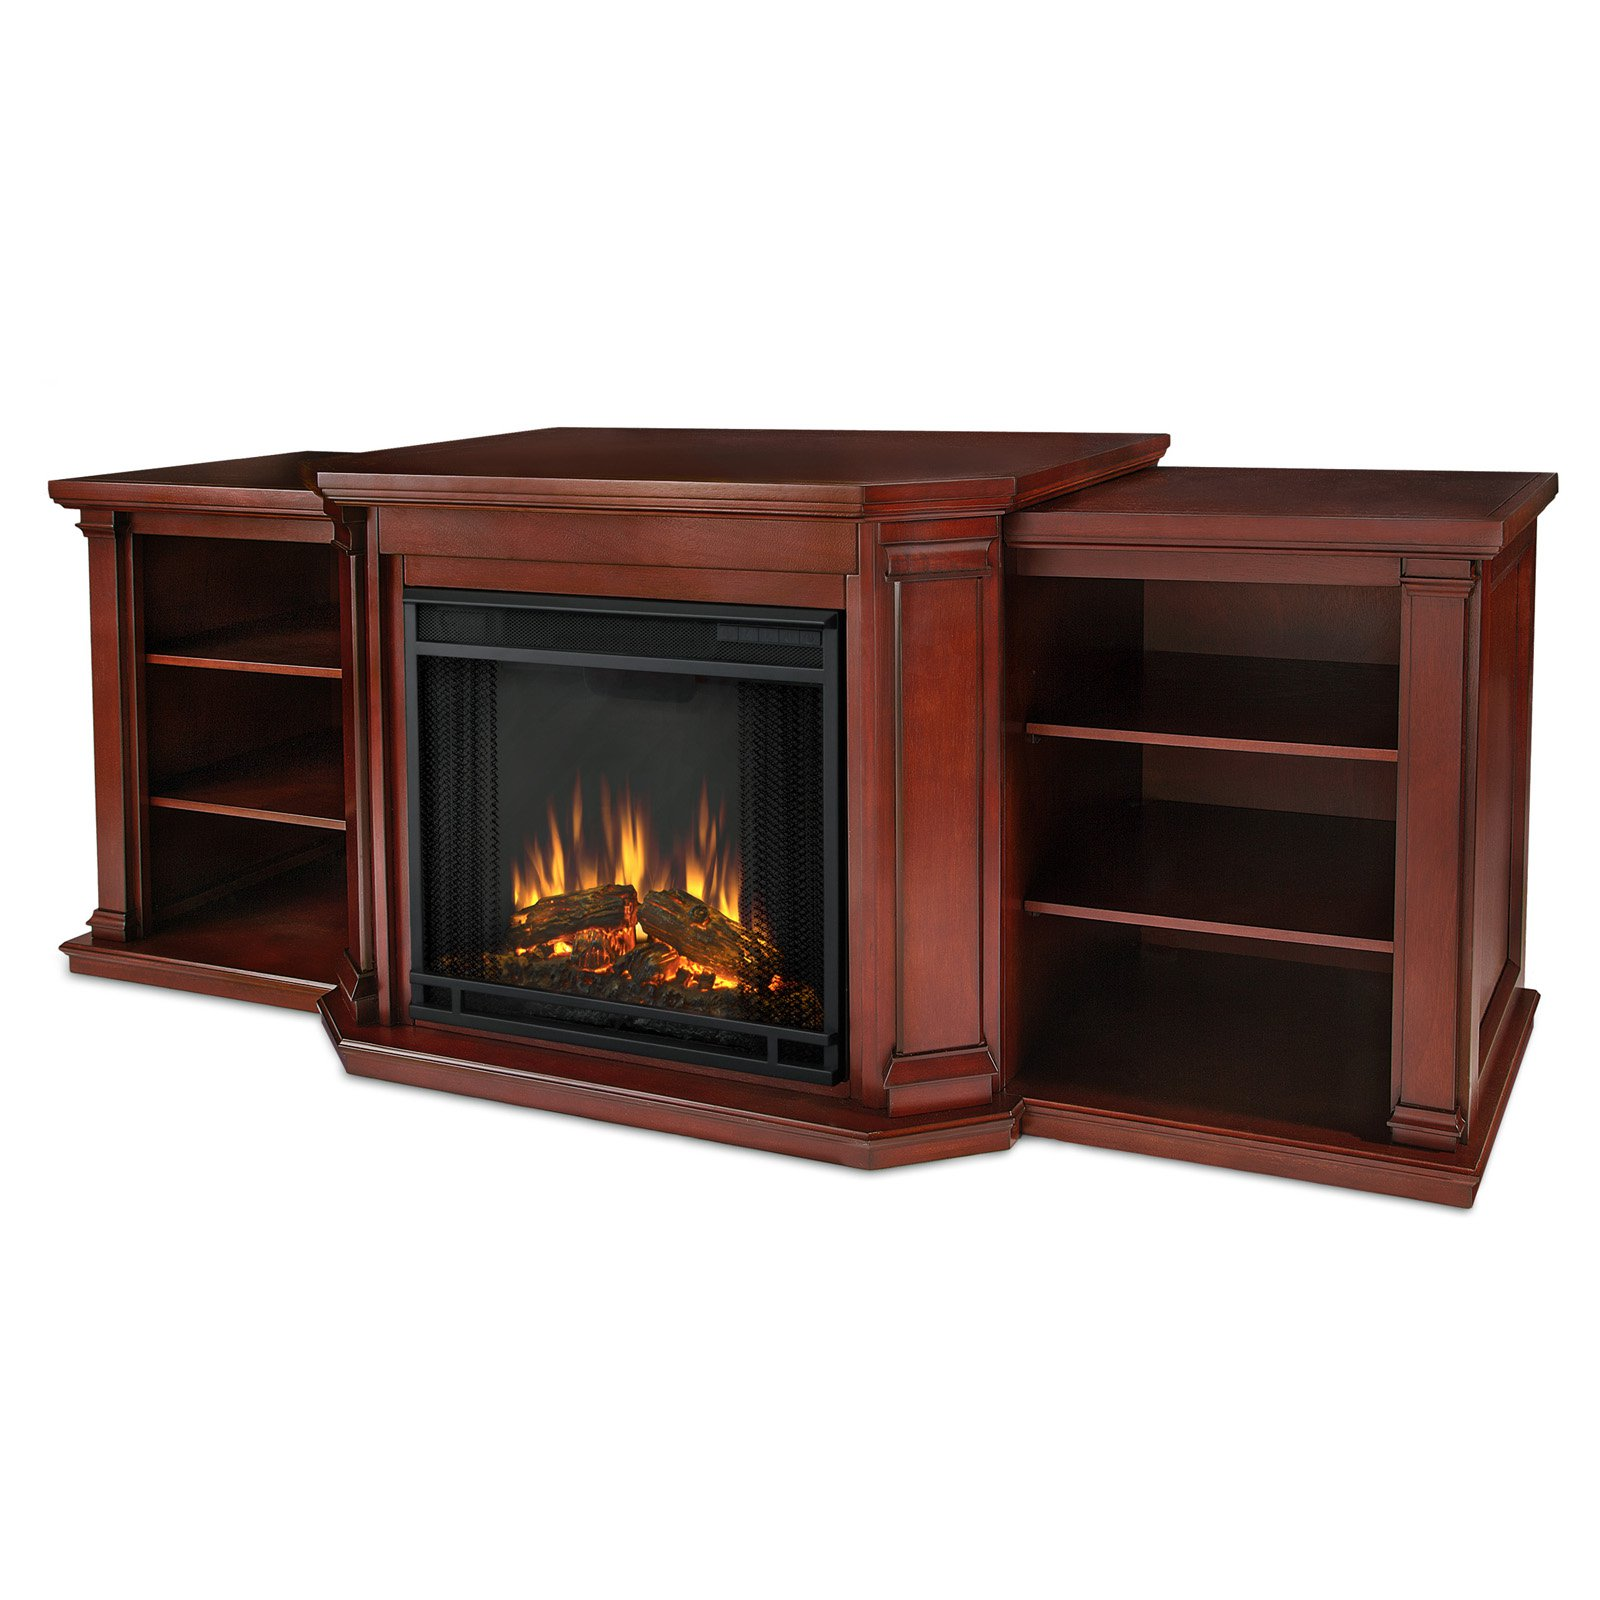 Free Shipping. Buy Real Flame Valmont Entertainment Center Electric Fireplace at Walmart.com